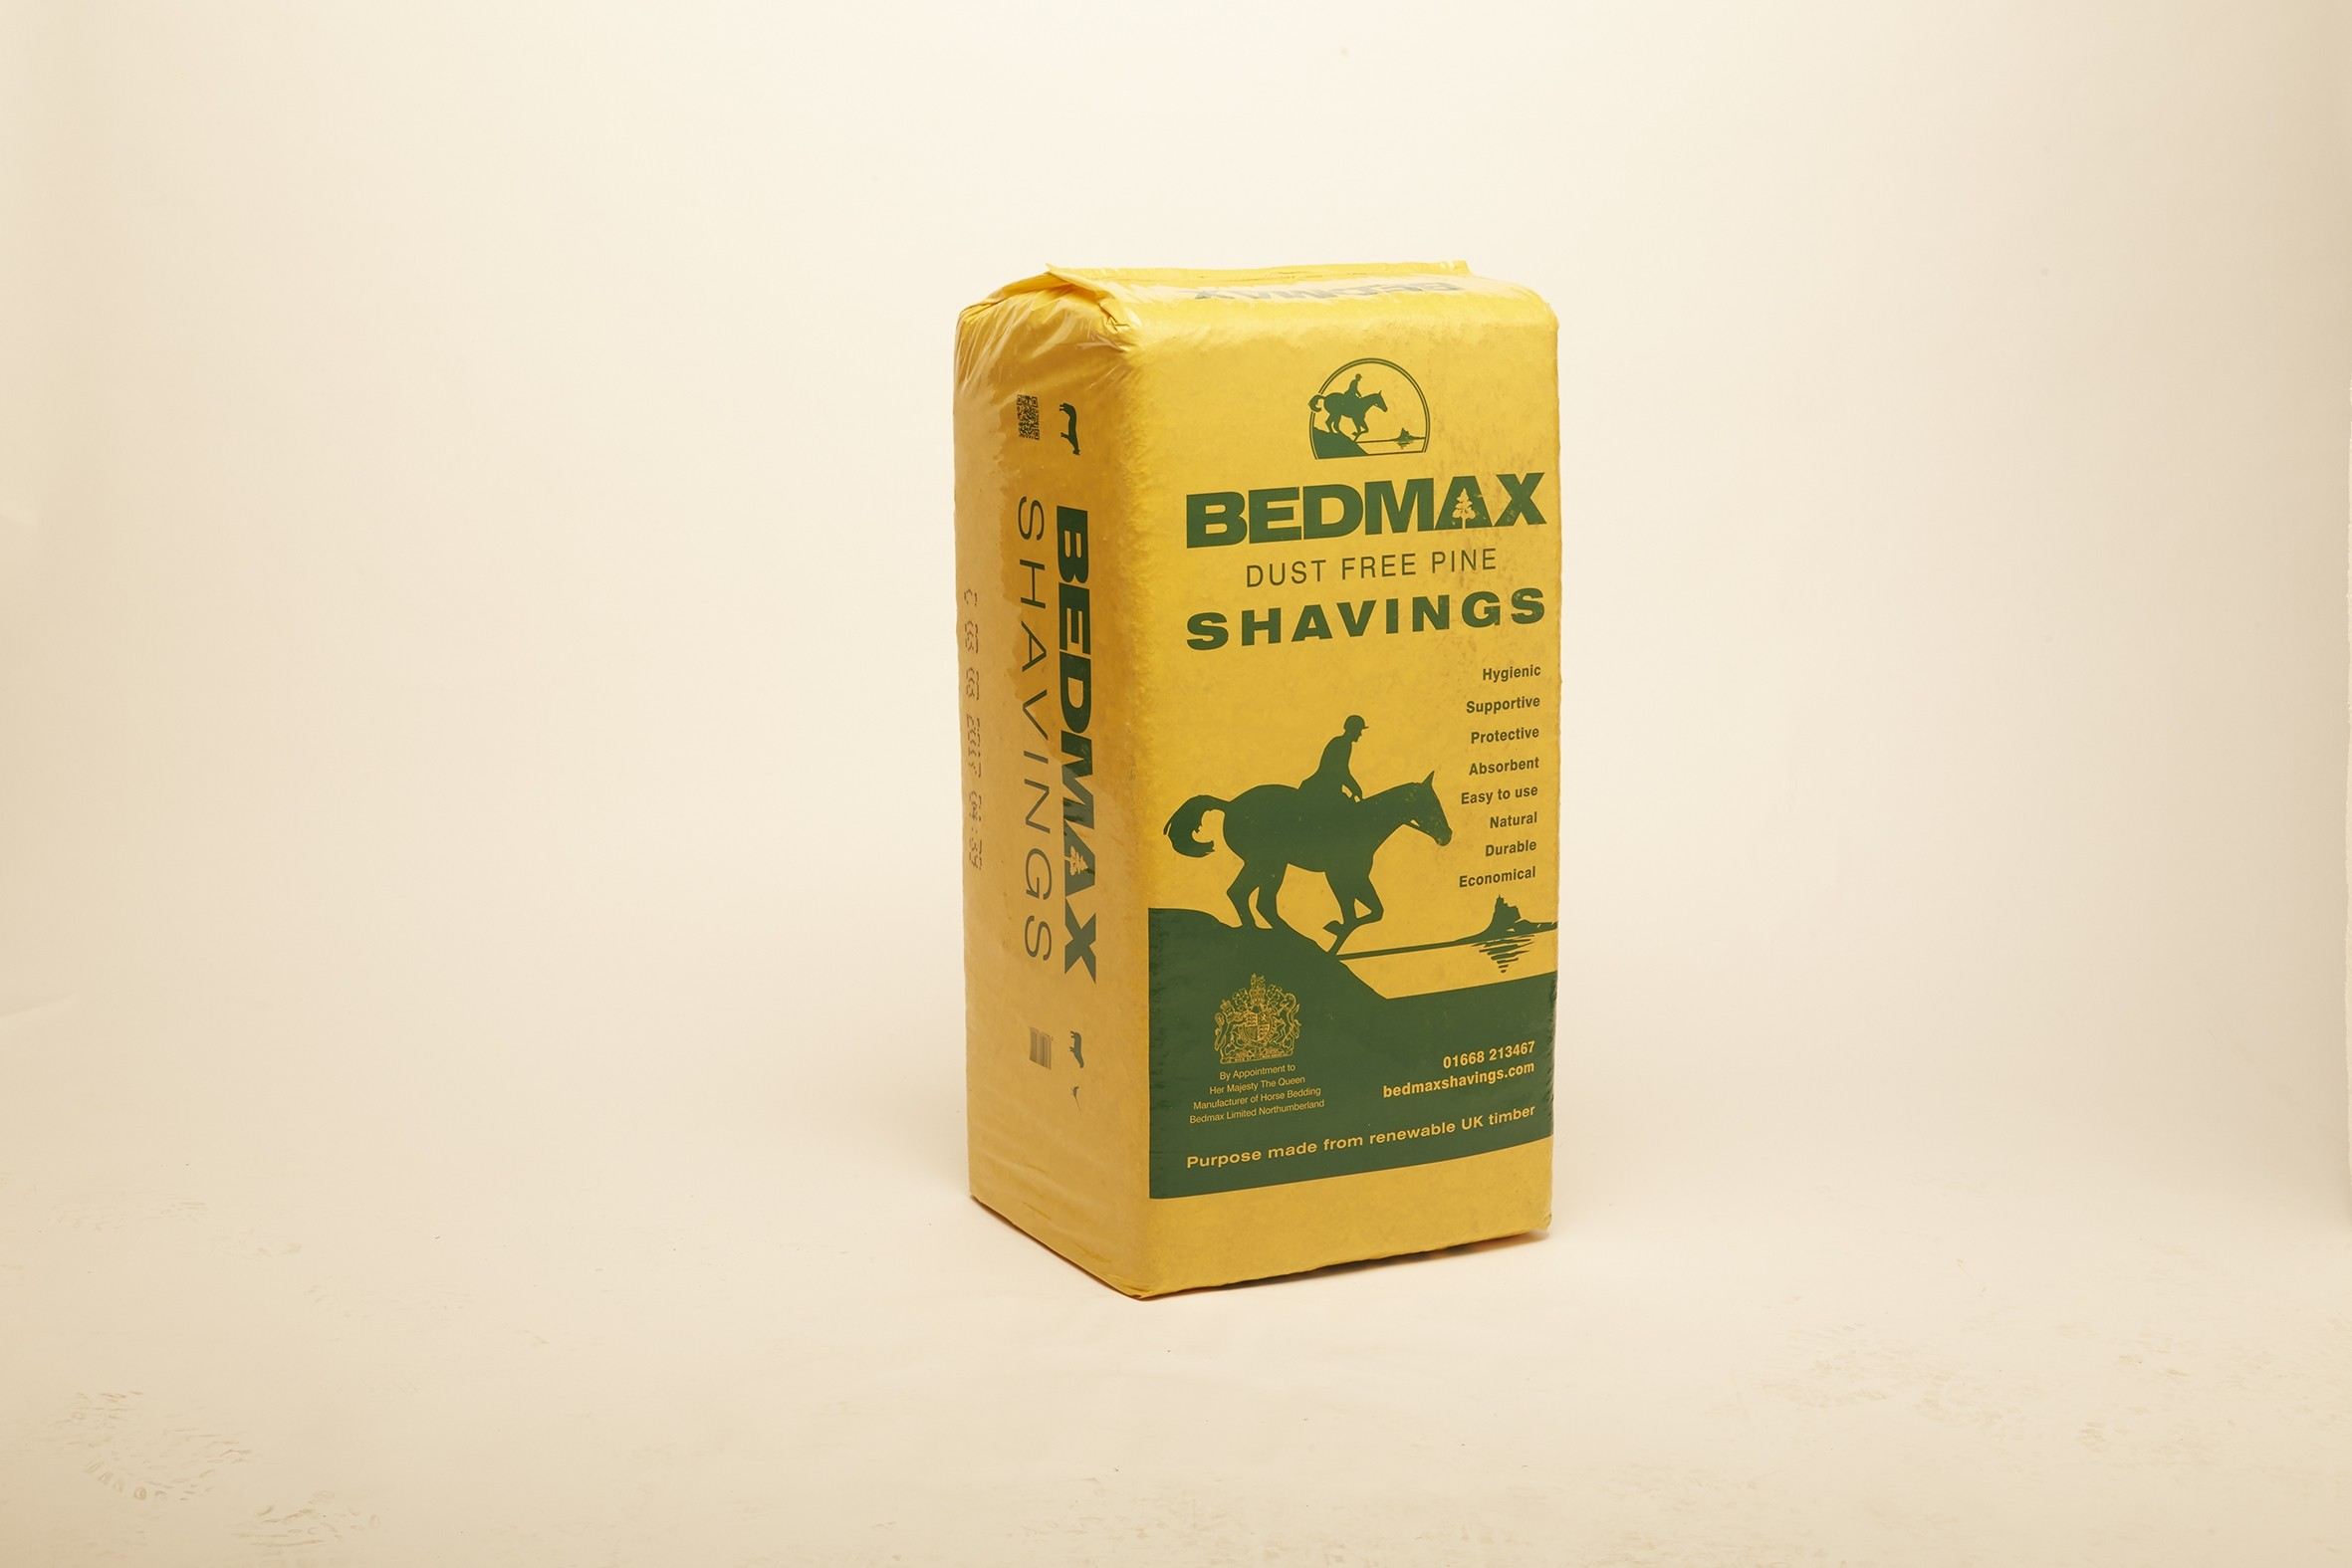 Bedmax Shavings Bedding  - Thomas Irving's equestrian and accessories store  Bedmax Shavings Bedding